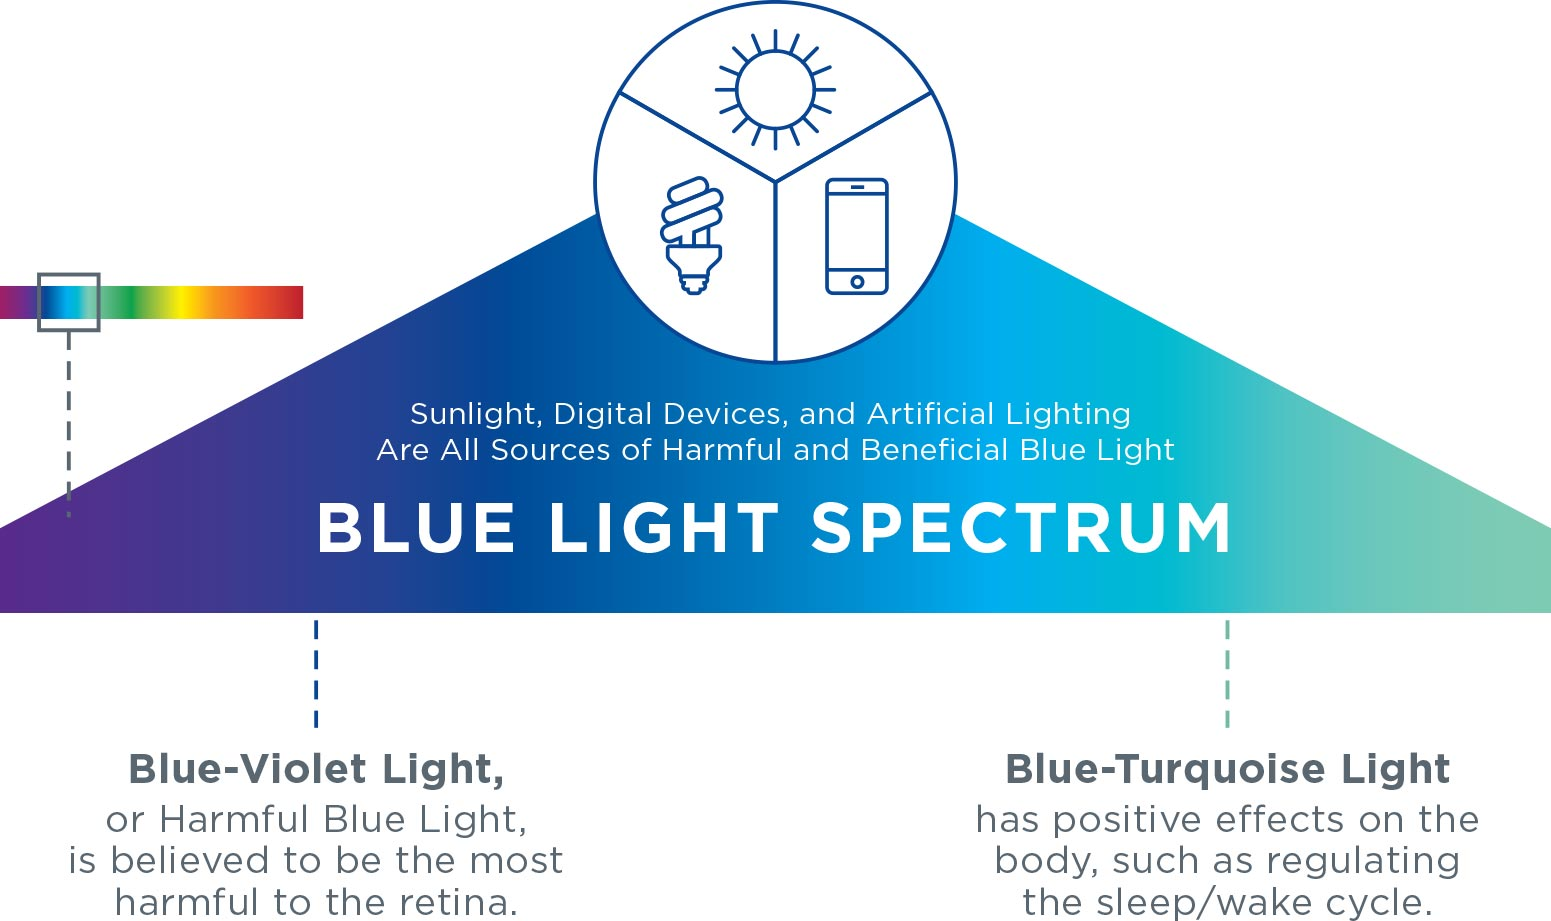 BLUE LIGHT SPECTRUM. Blue-Violet Light, or Harmful Blue Light, is believed to be the most harmful to the retina. Blue-Turquoise Light has positive effects on the body, such as regulating the sleep/wake cycle.